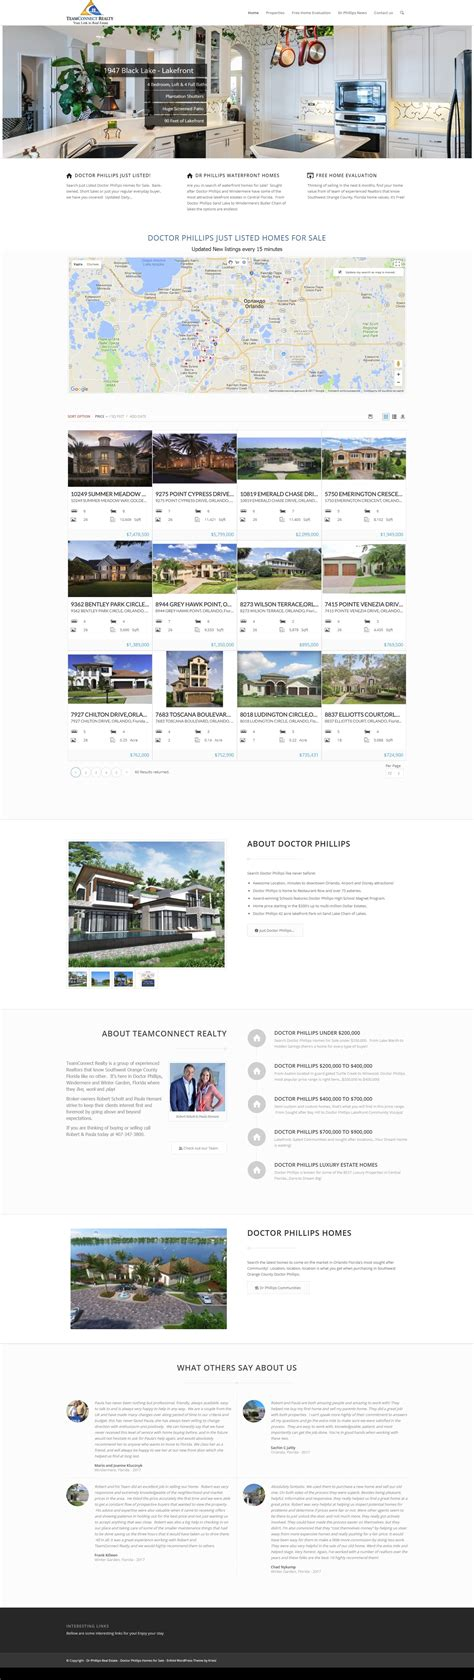 avada theme changelog myteamconnect com realtyna real estate web